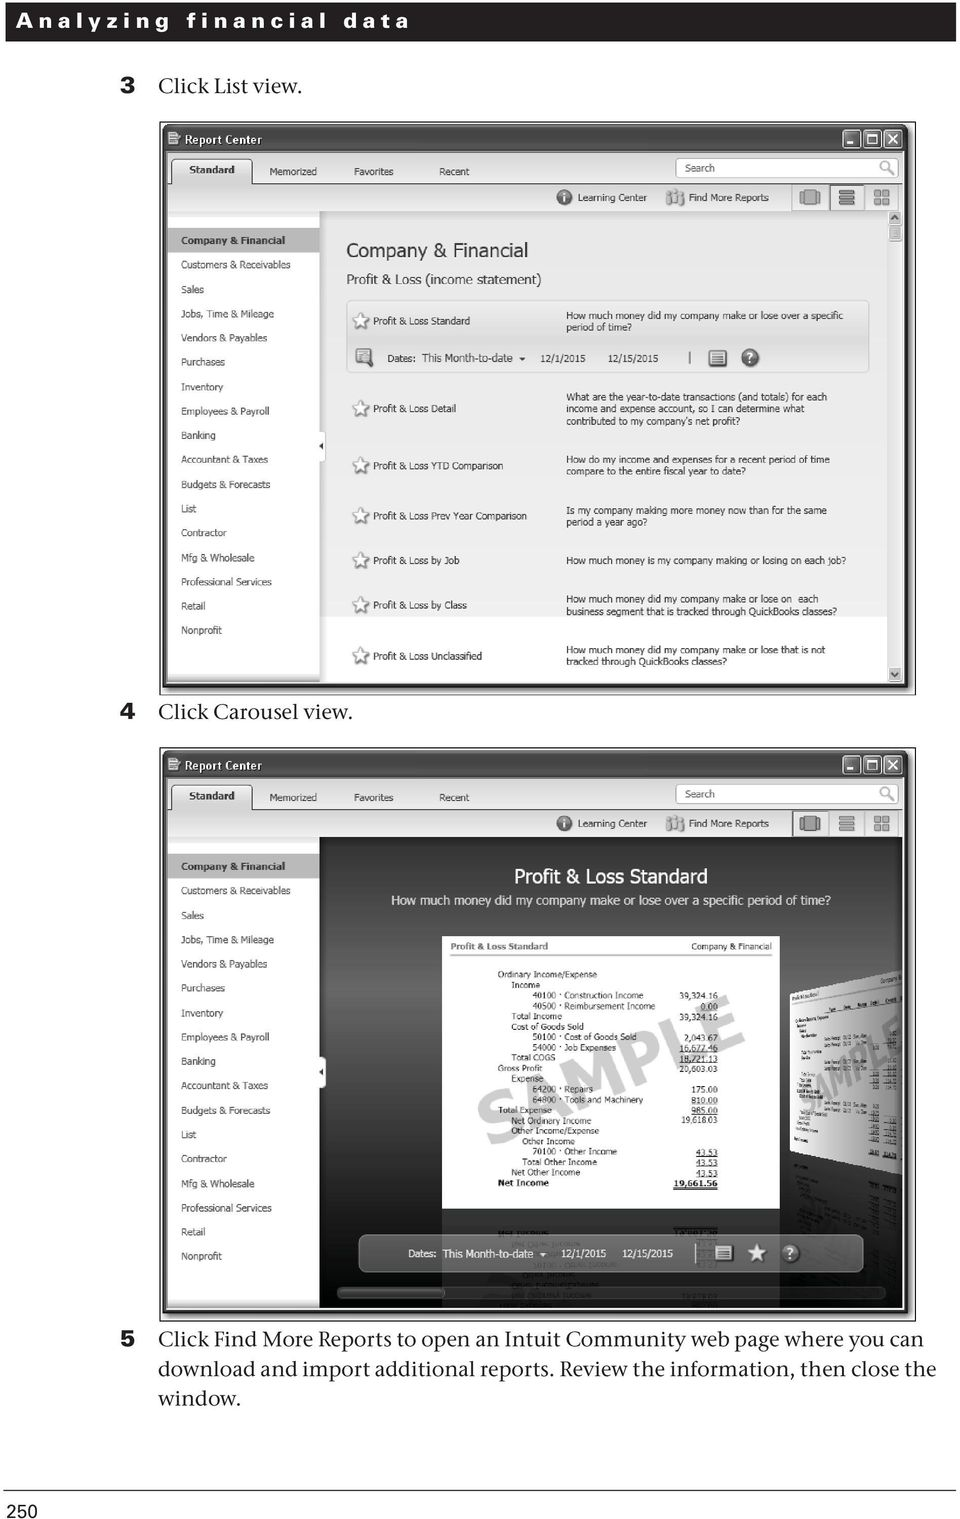 5 Click Find More Reports to open an Intuit Community web